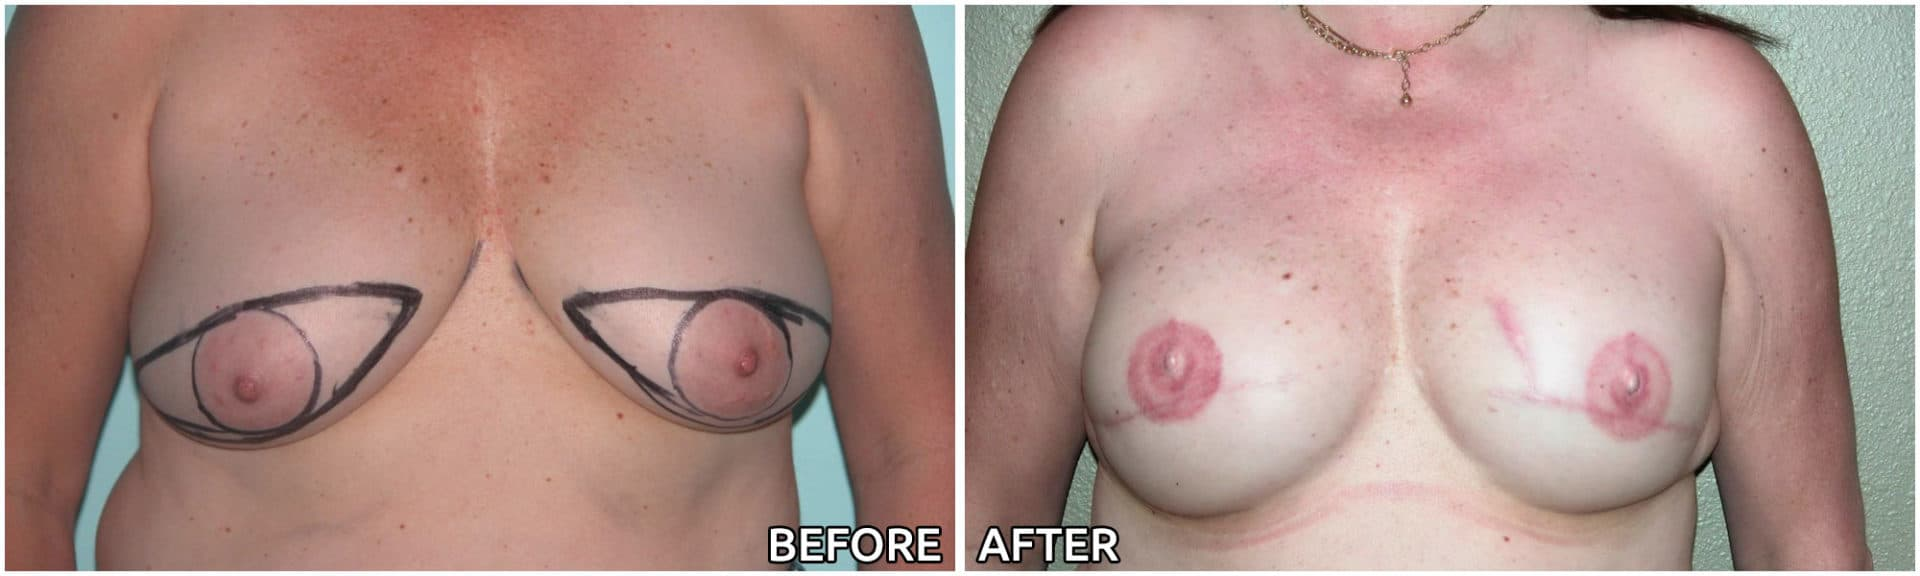 breast-reconstruction3